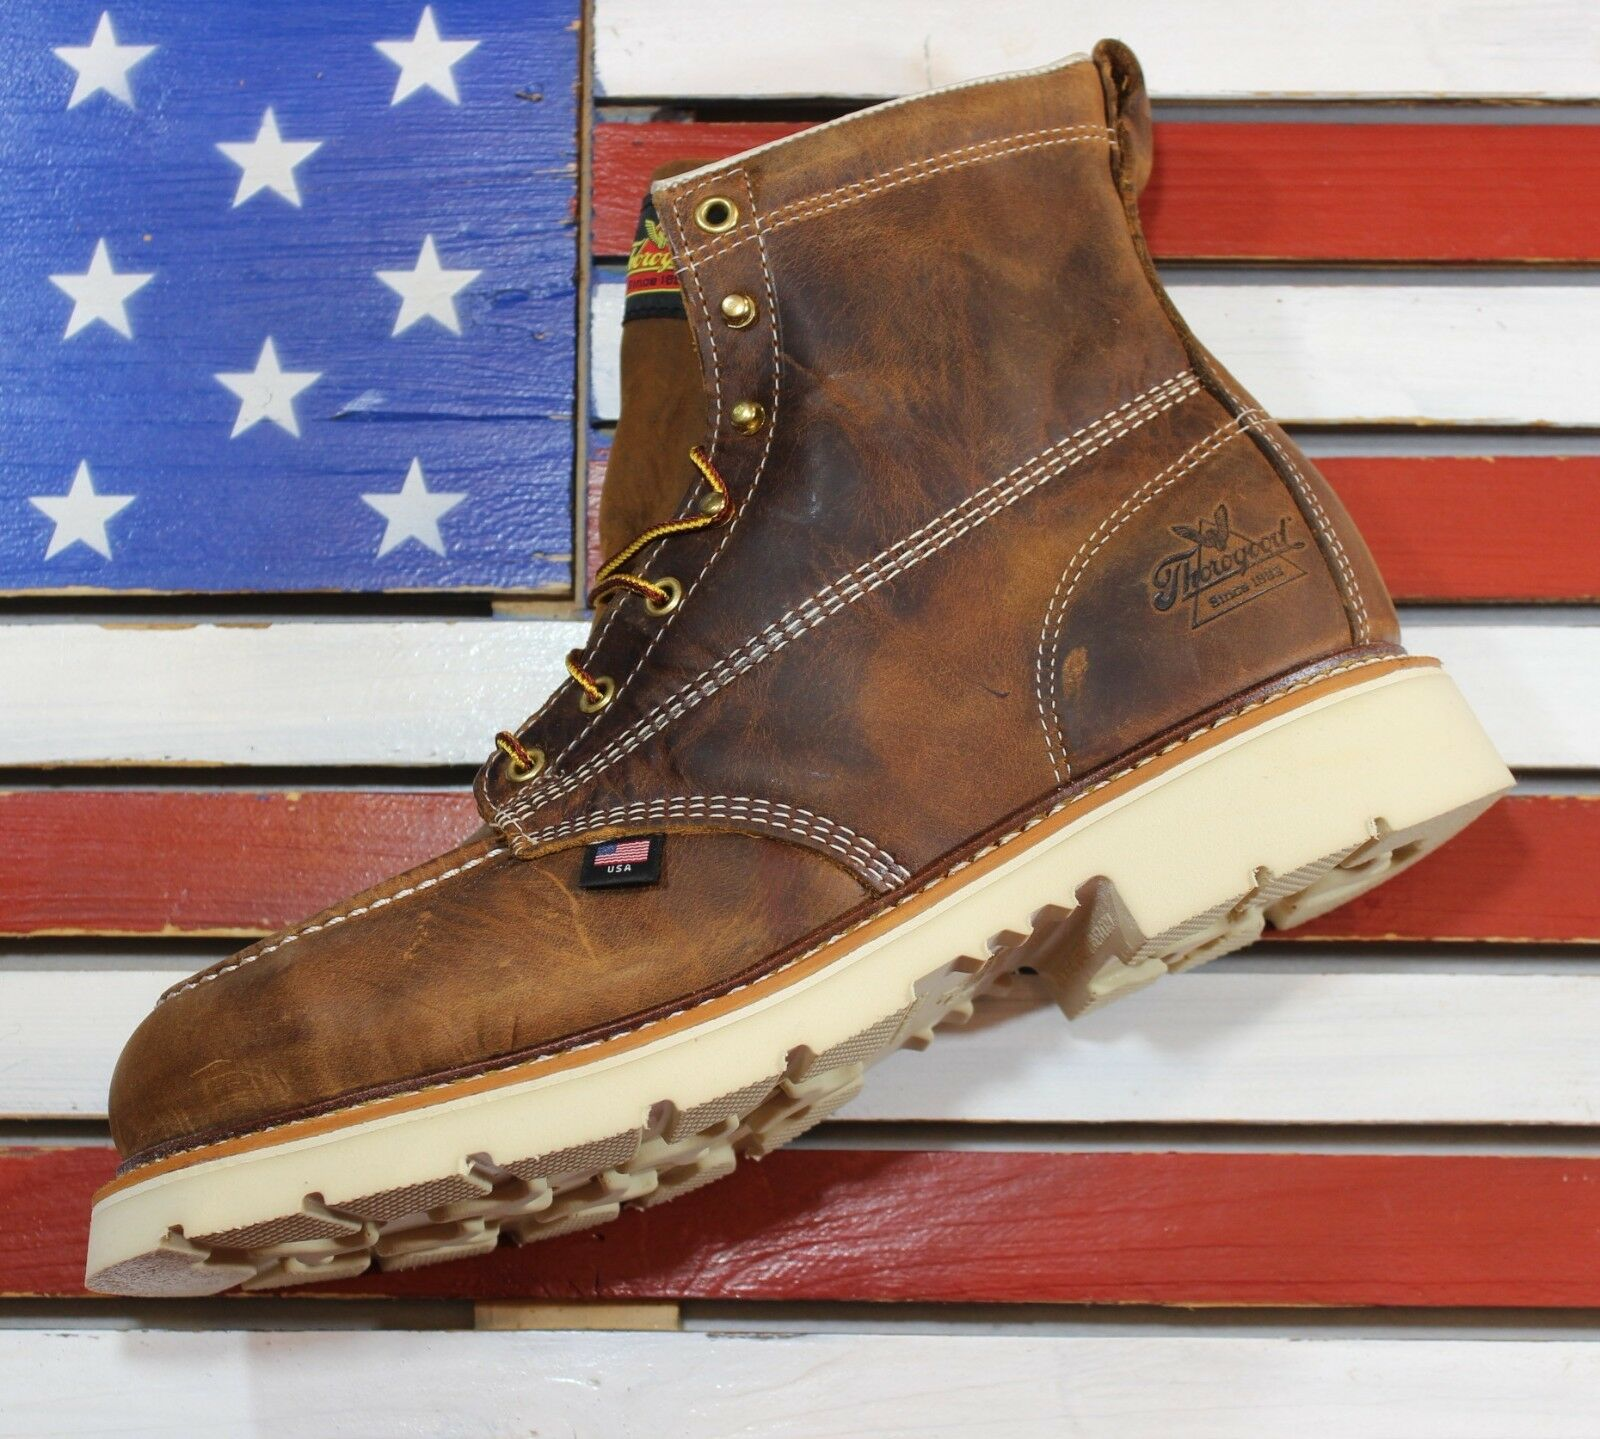 vanno a ruba Thorogood 6  American Heritage Safety Safety Safety Steel Toe Work avvio Made In USA [804-4375]  molte sorprese